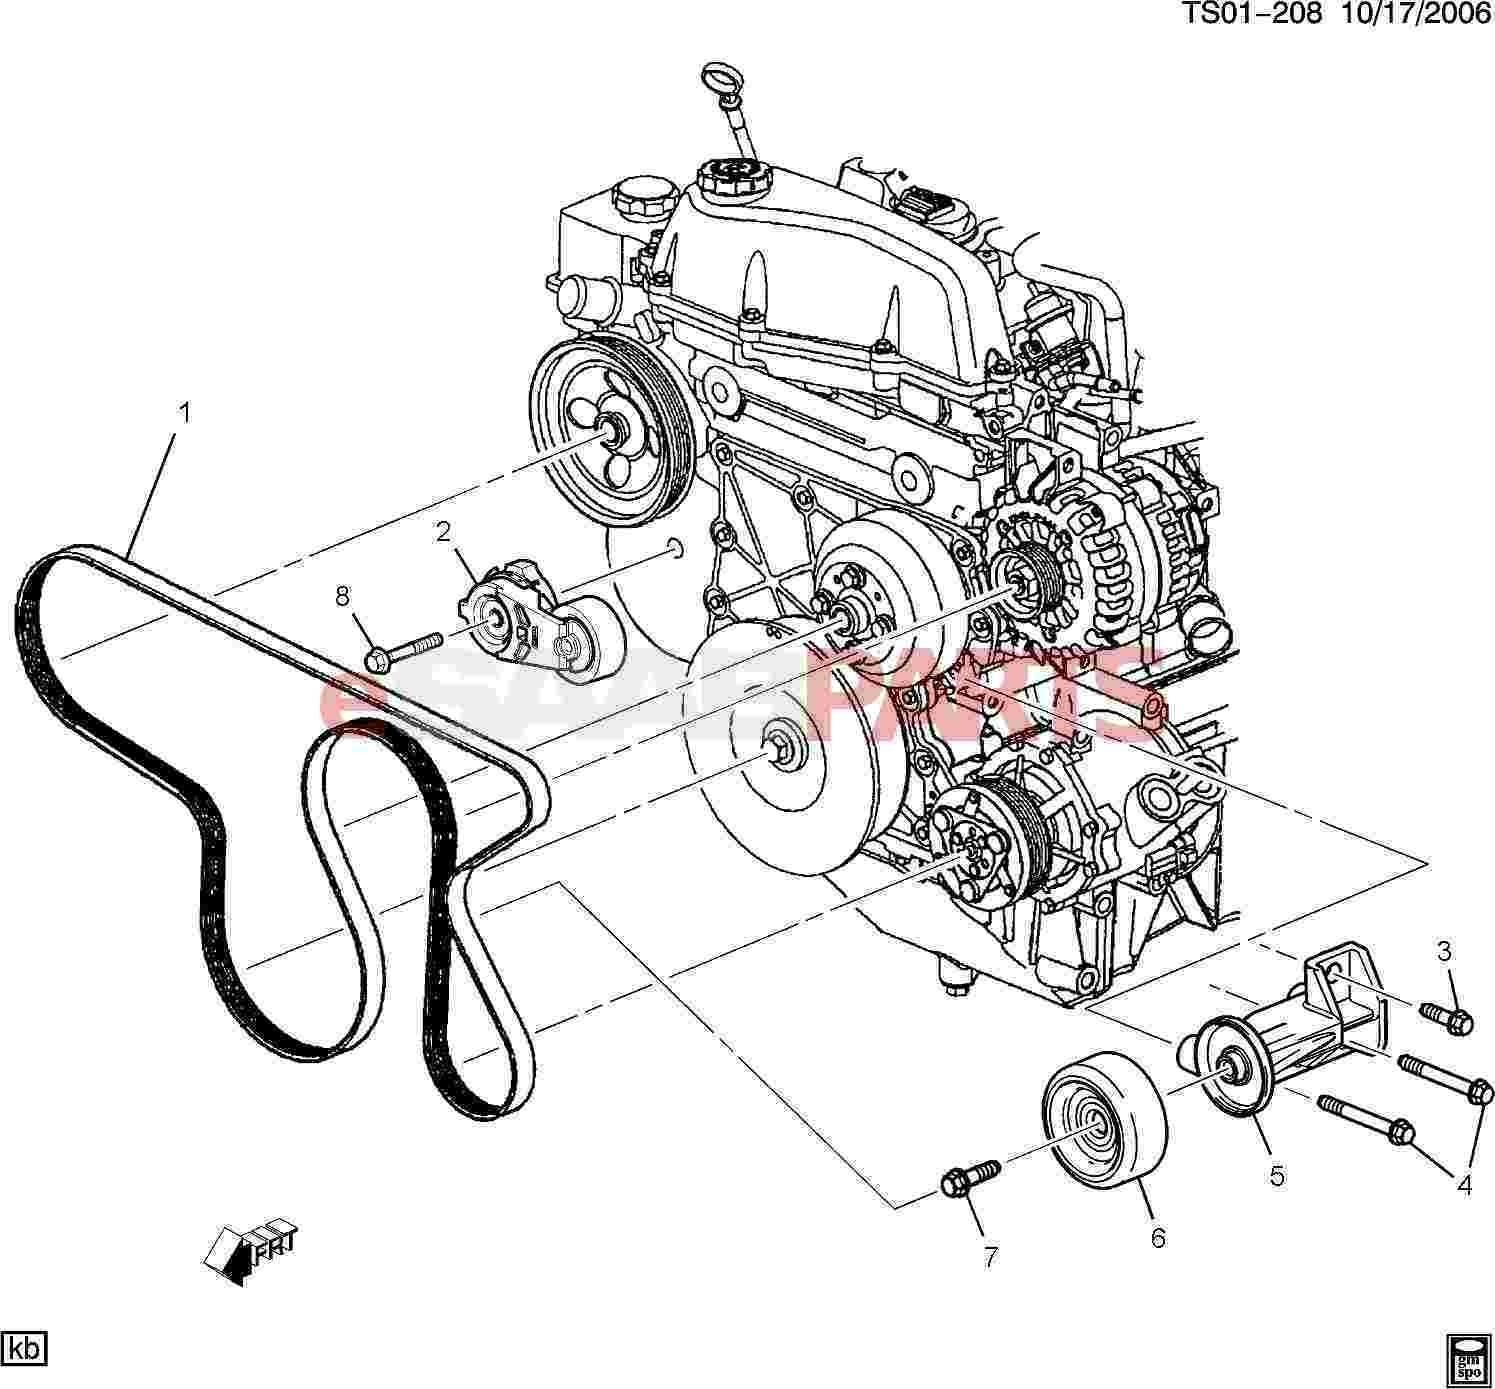 Toyota Camry 2002 Engine Diagram 1997 toyota Corolla Engine Diagram 2002 toyota Corolla Engine Of Toyota Camry 2002 Engine Diagram 2003 toyota Camry Parts Diagram